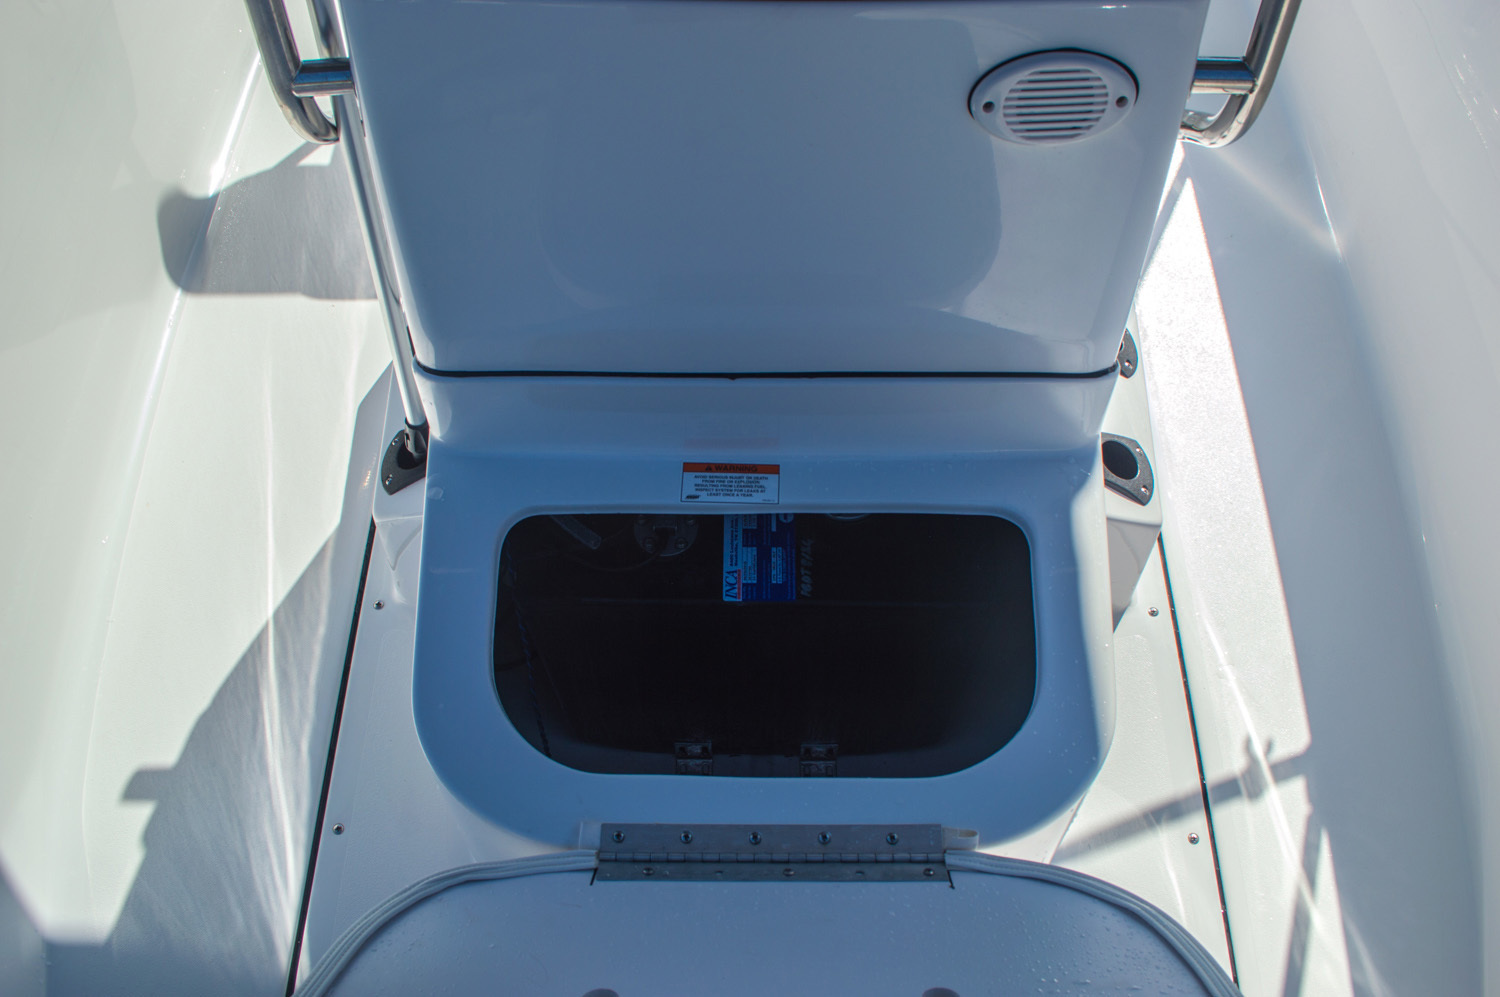 Thumbnail 30 for New 2016 Sportsman 17 Island Reef boat for sale in West Palm Beach, FL